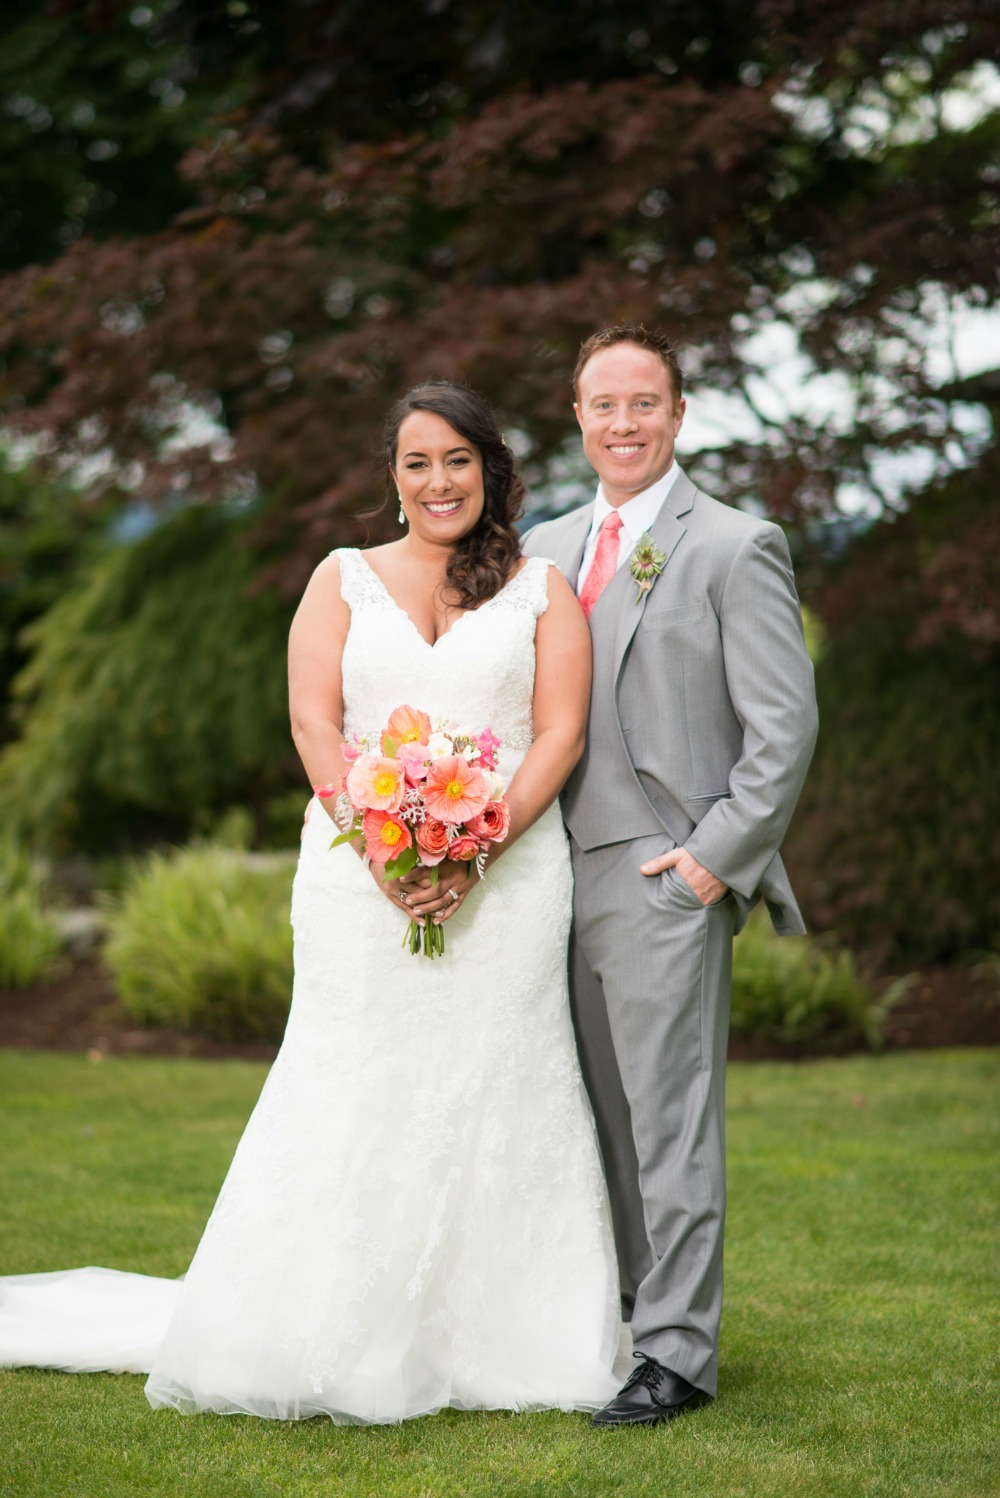 countrybouquetsfloral-natalieandscott-wedding-lucashenningphotographic-007